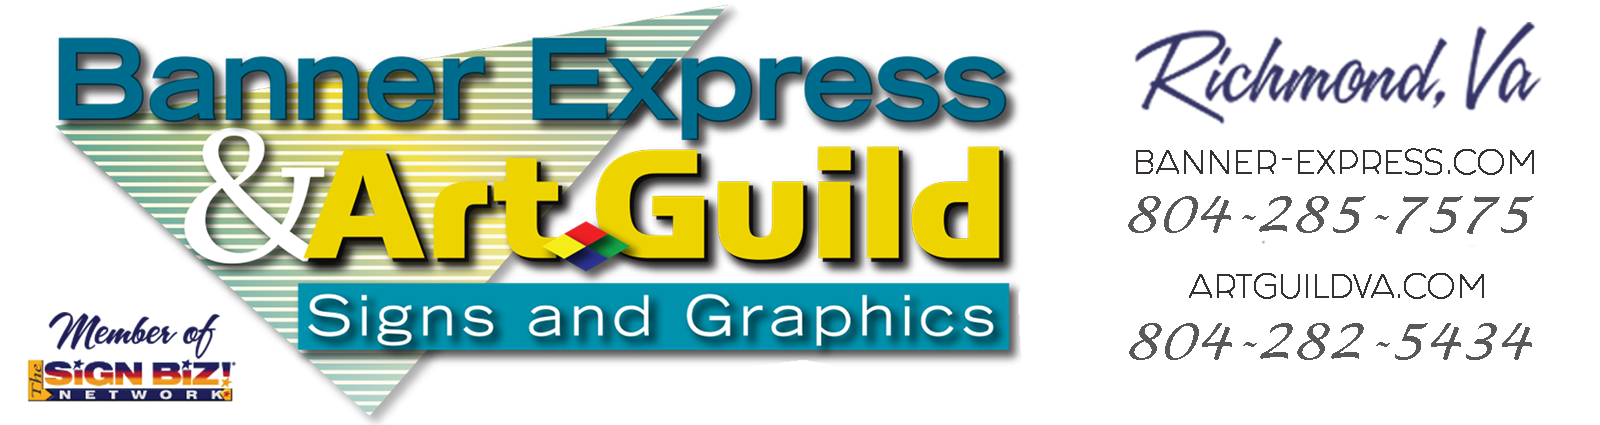 Art Guild & Banner Express